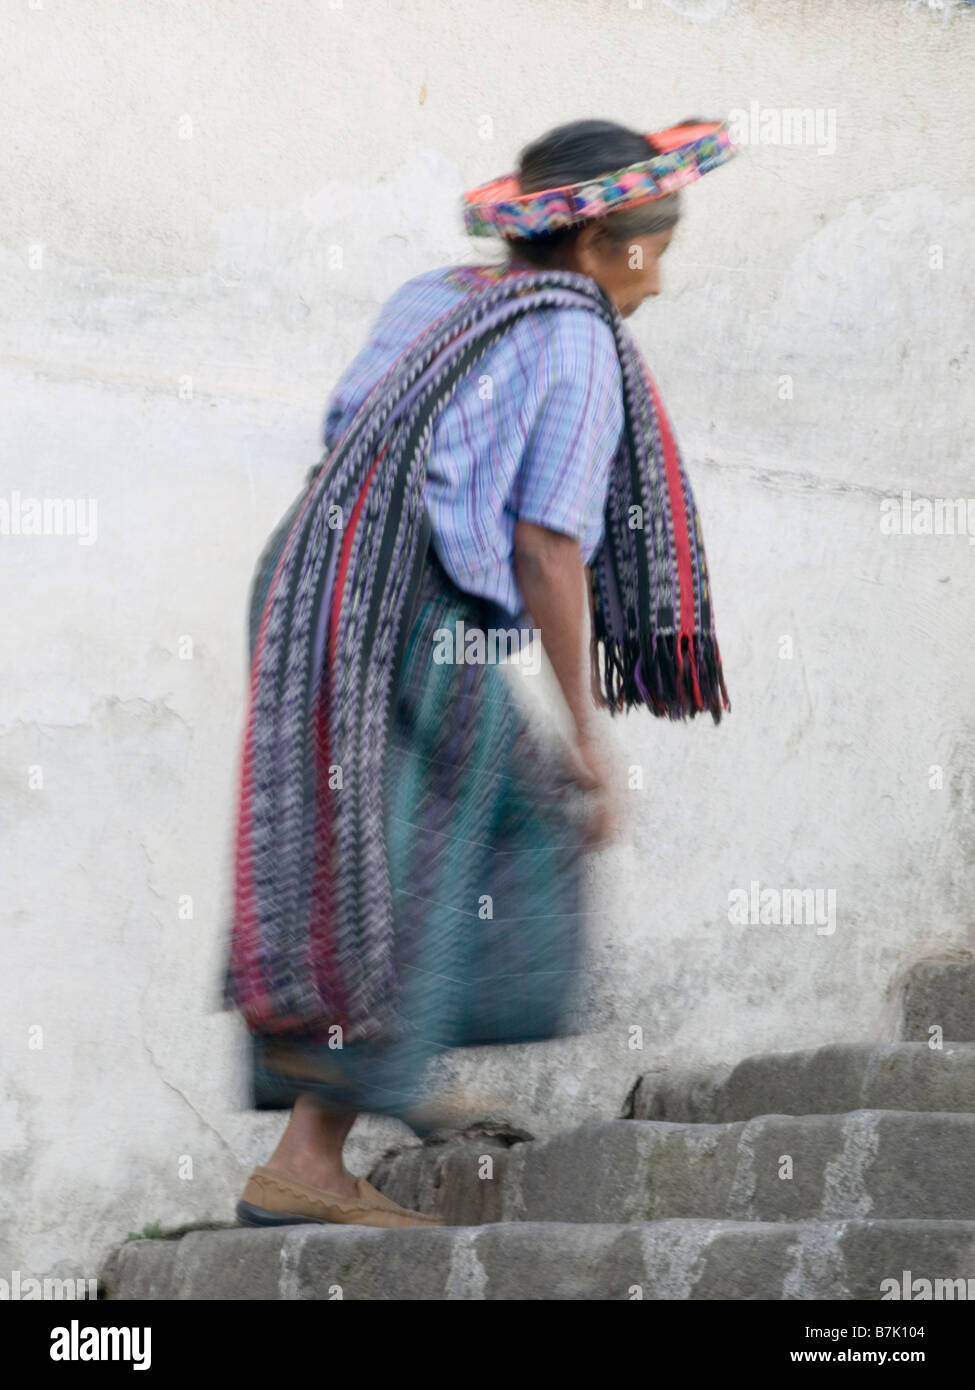 Villagers walking up church stairs - Stock Image